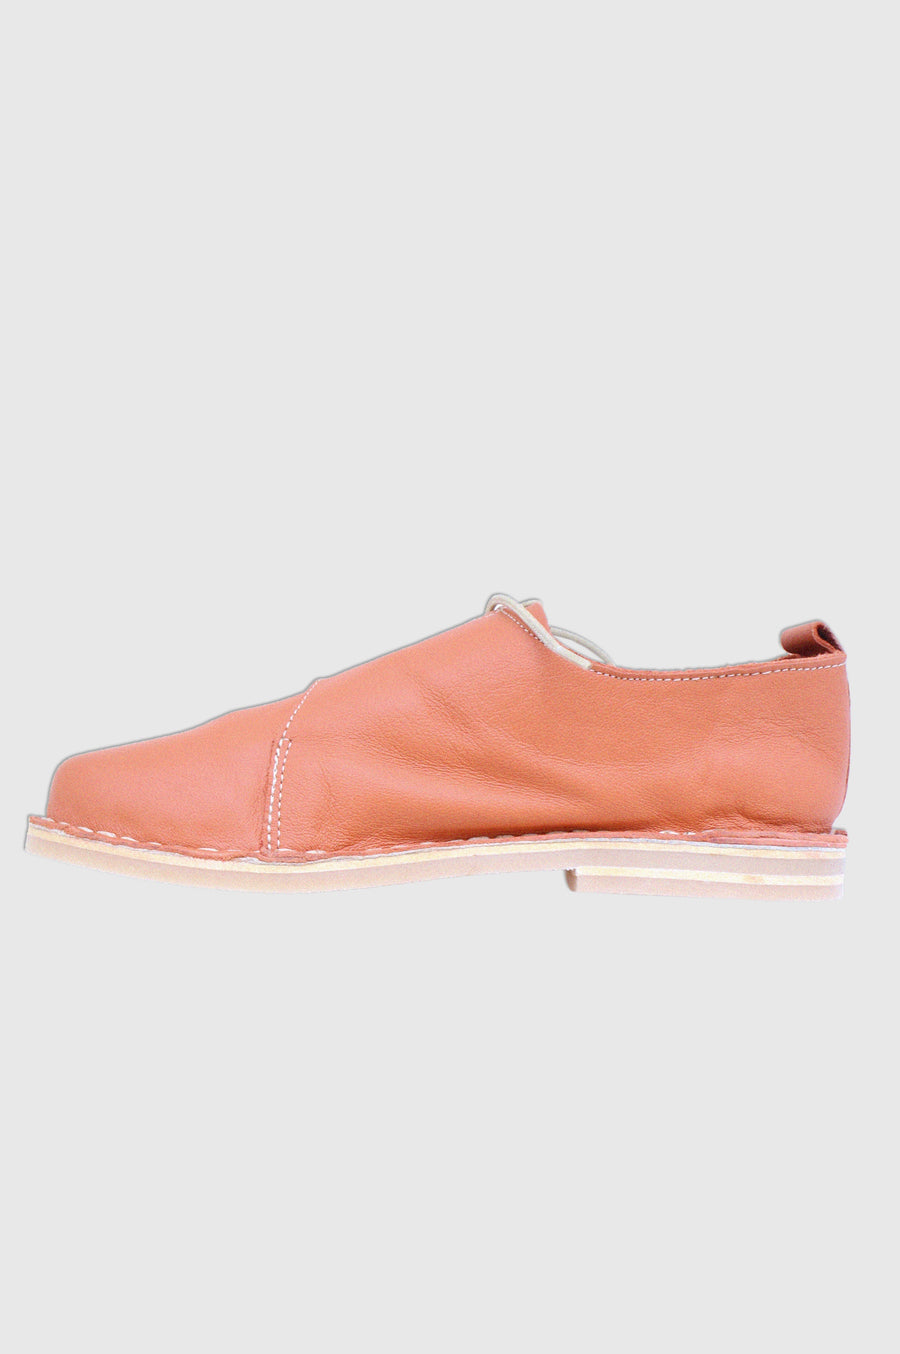 SHOES | SIDE TIE VELLIES | BURNT ORANGE